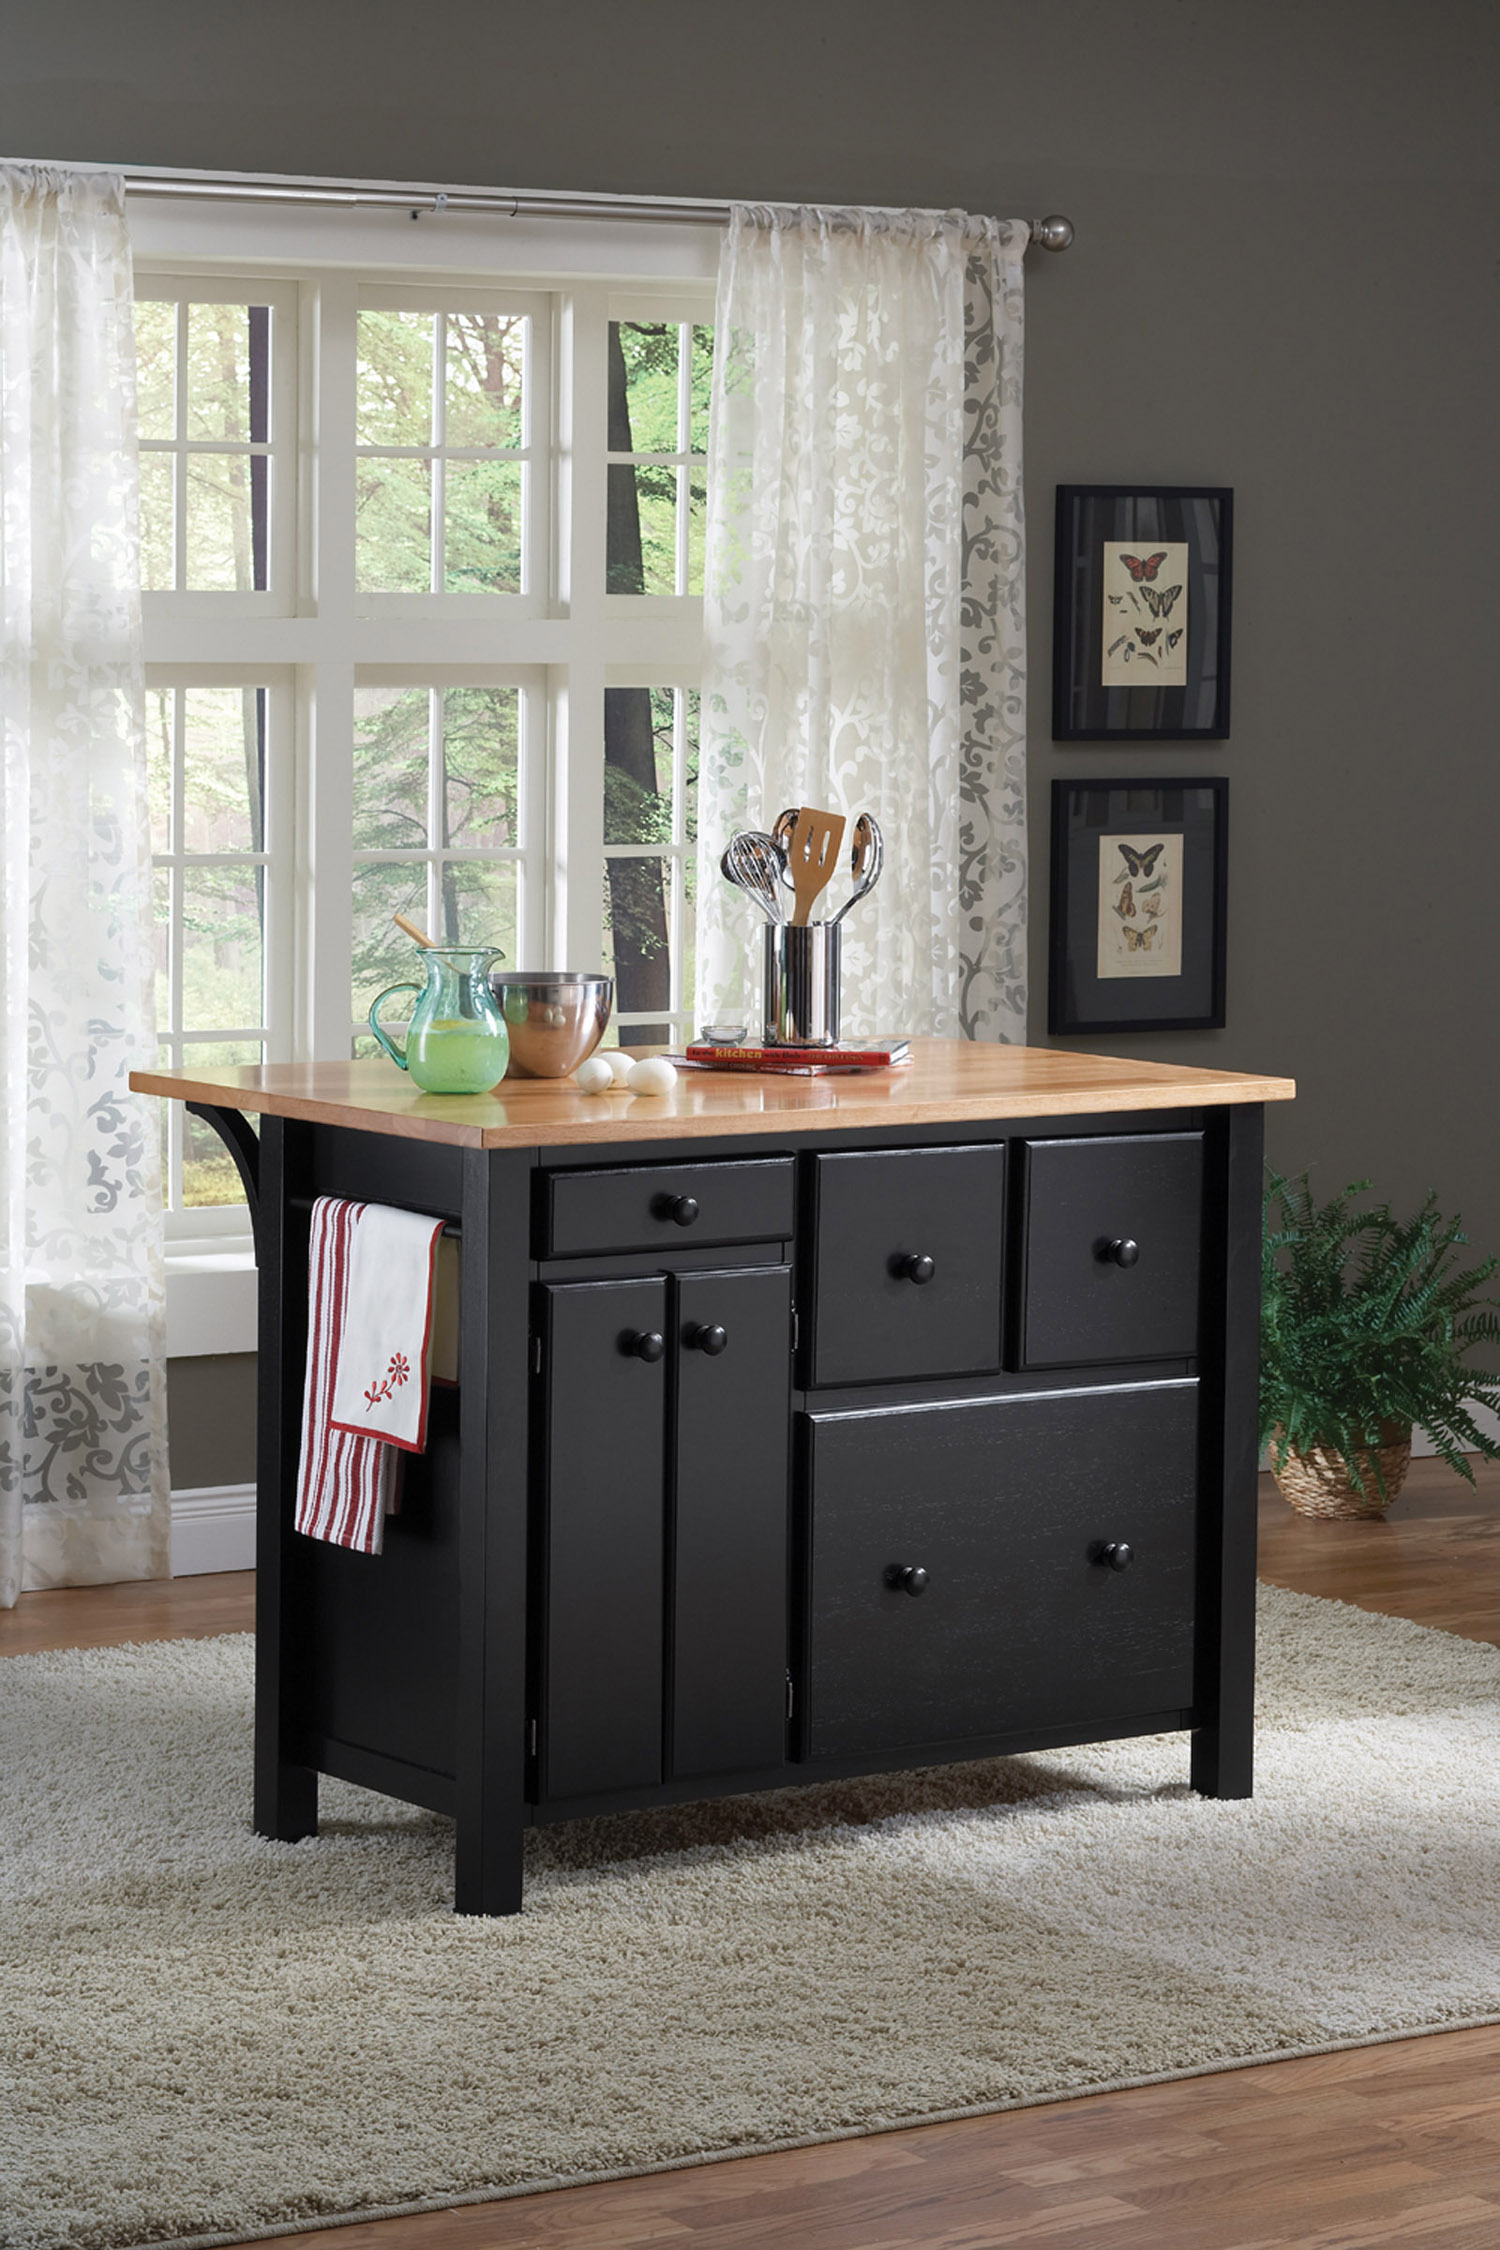 kitchen island breakfast bar how to clean silgranit sinks generations home furnishings